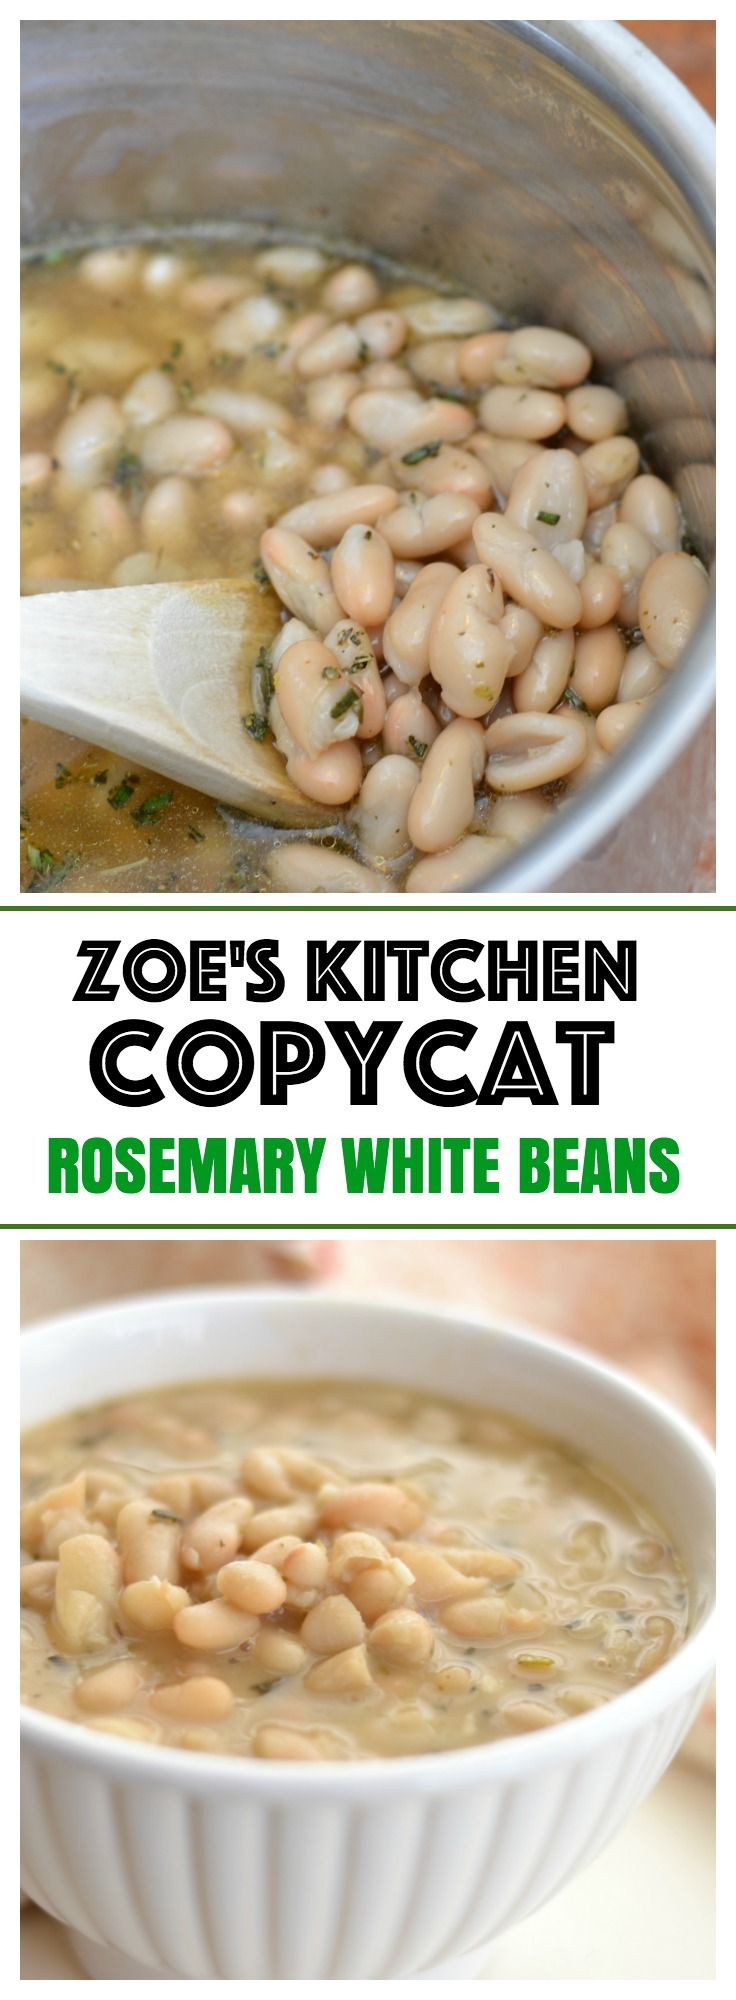 Rosemary White Beans copycat recipe from Zoe's Kitchen | easy vegan side dish with tons of flavor